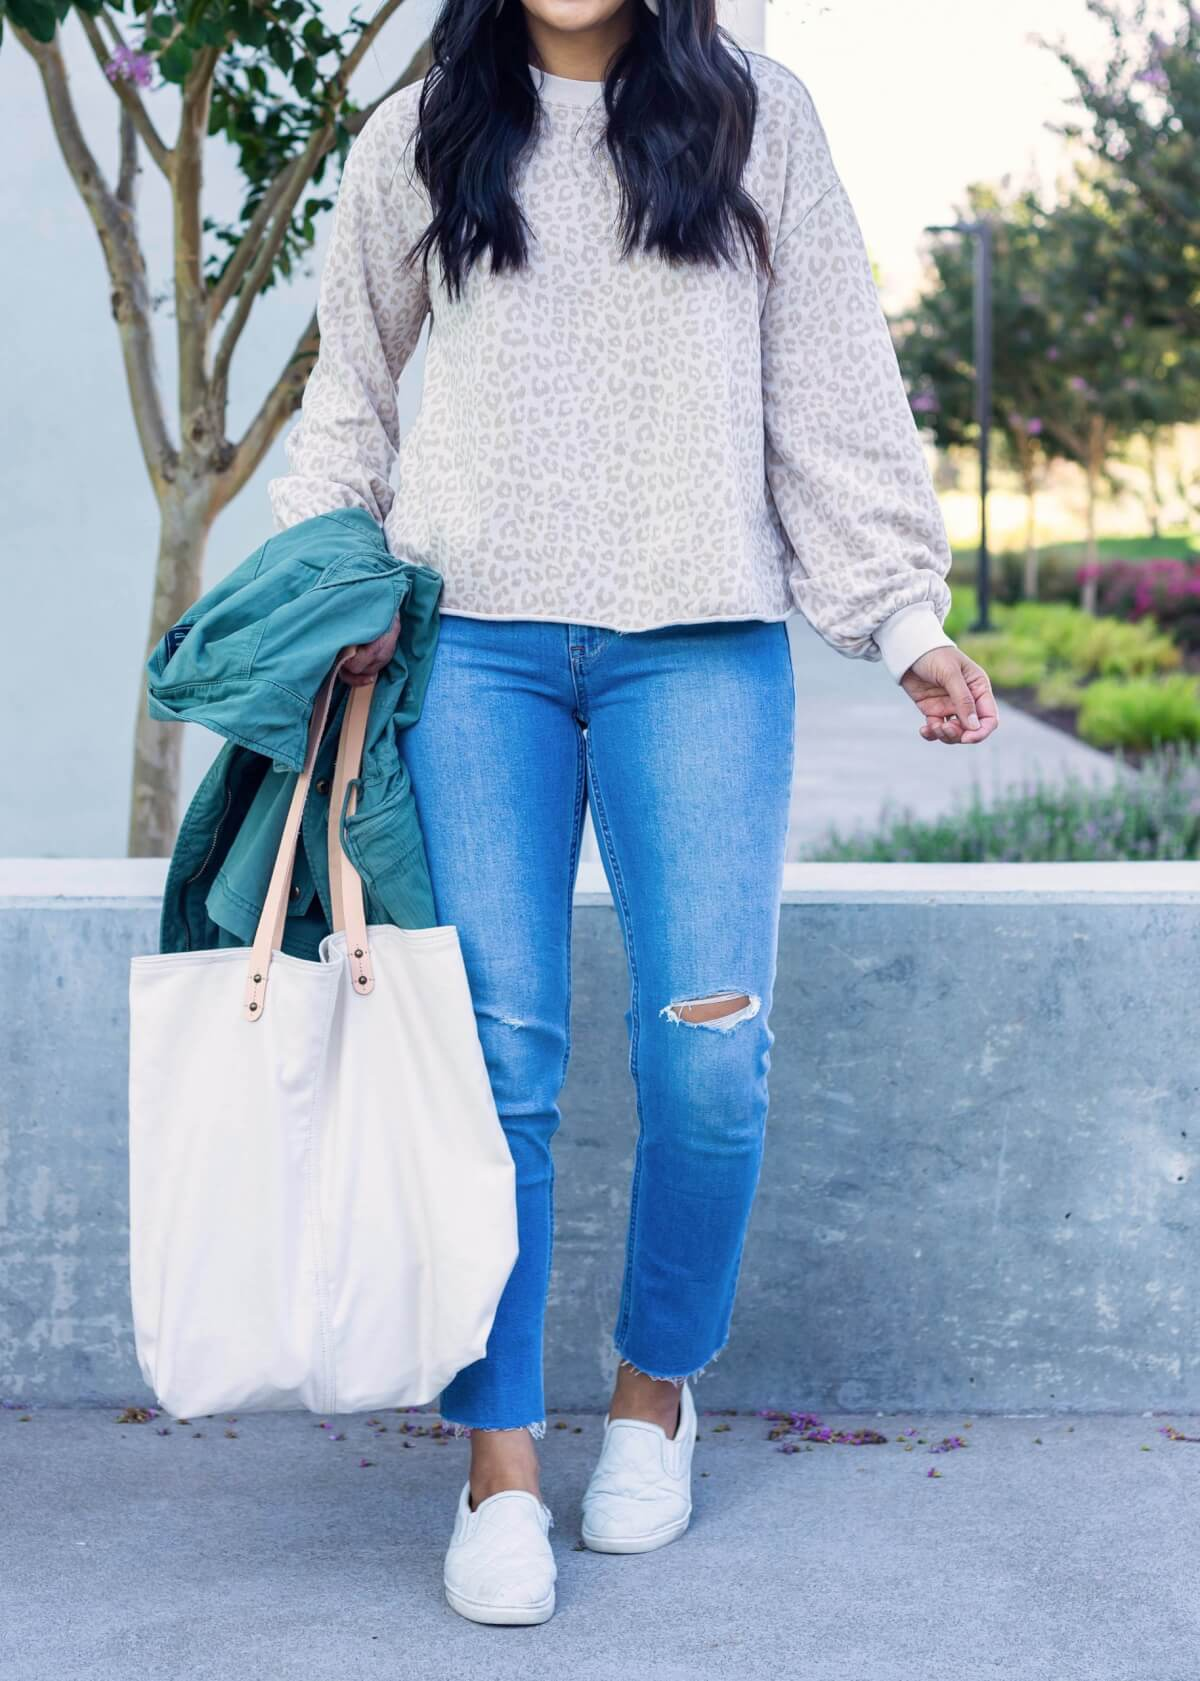 Casual Fall Outfit: light pink beige leopard sweatshirt + light wash distressed raw hem straight leg jeans + Gap green utility jacket + white slip-on shoes + white canvas tote bag